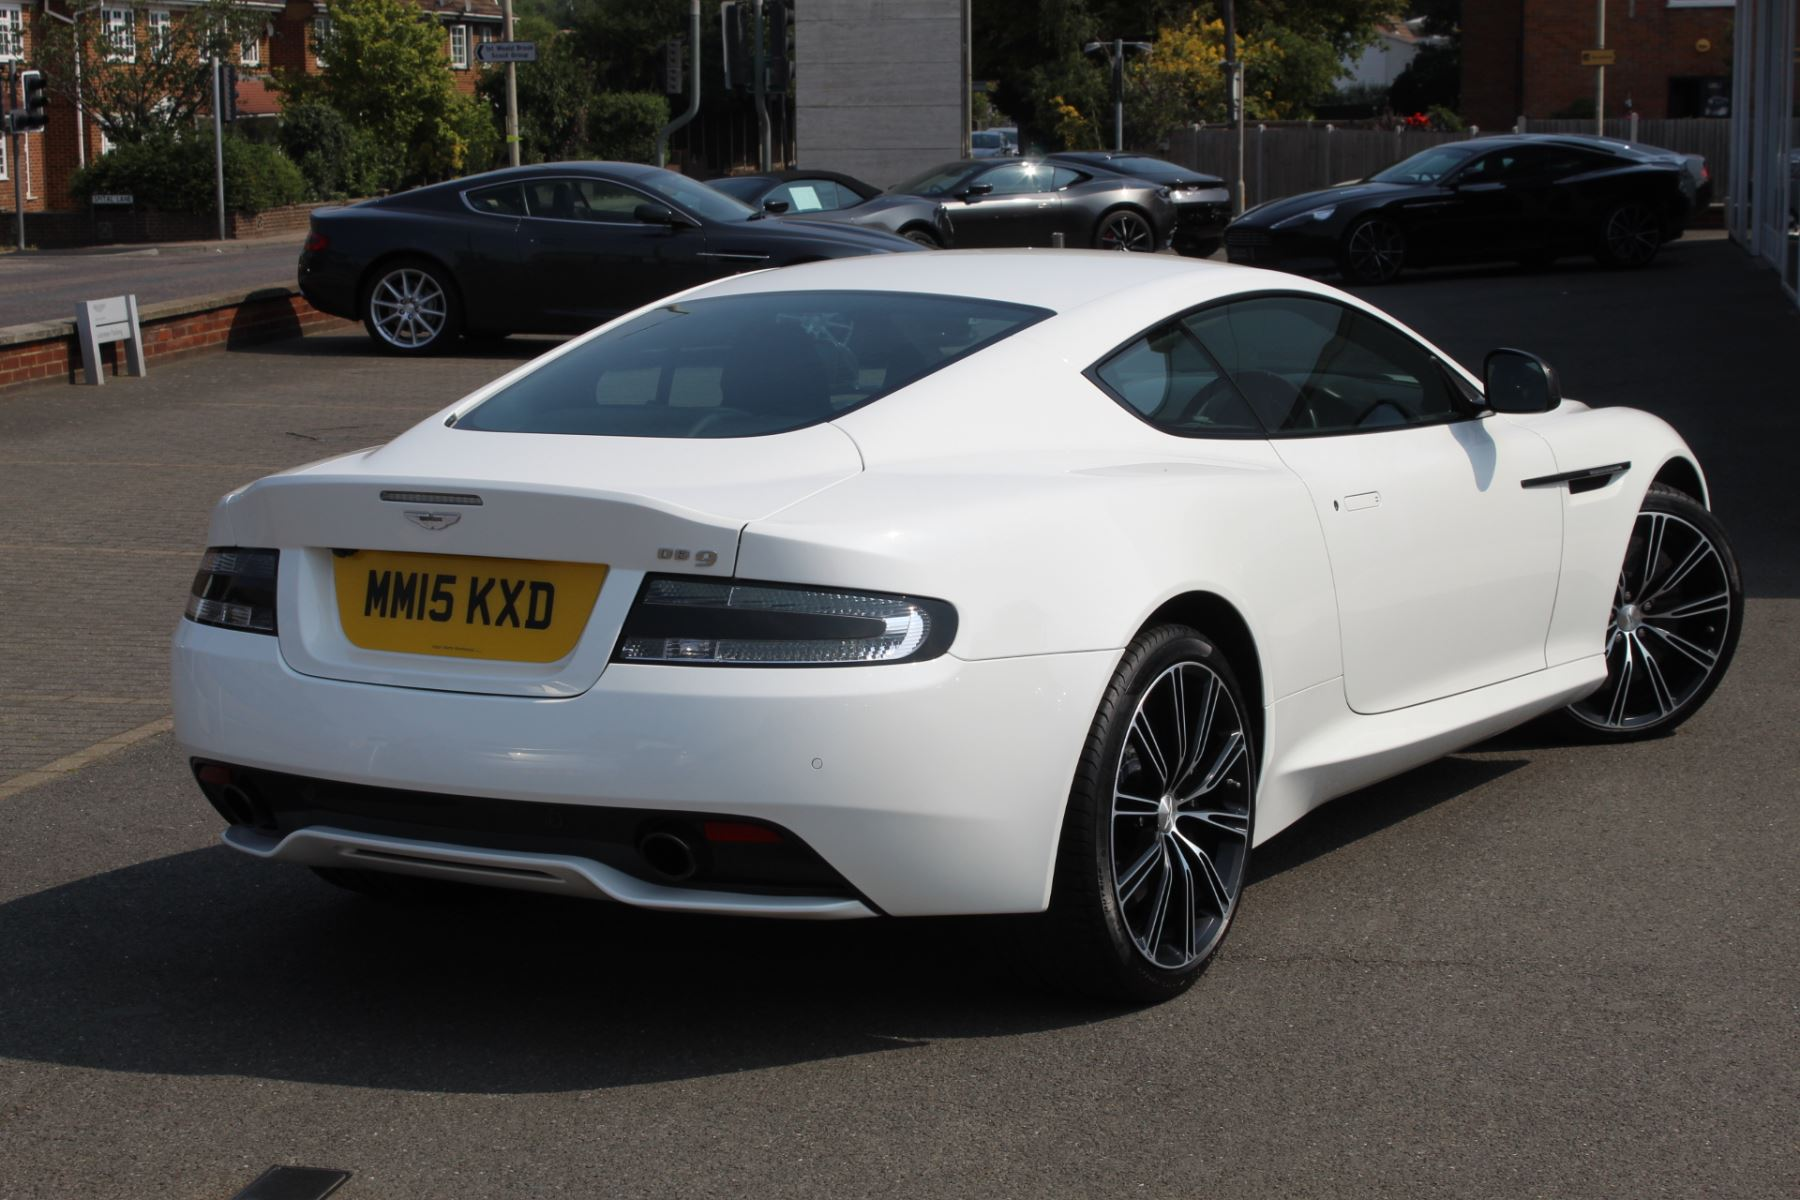 Aston Martin DB9 V12 2dr Touchtronic image 12